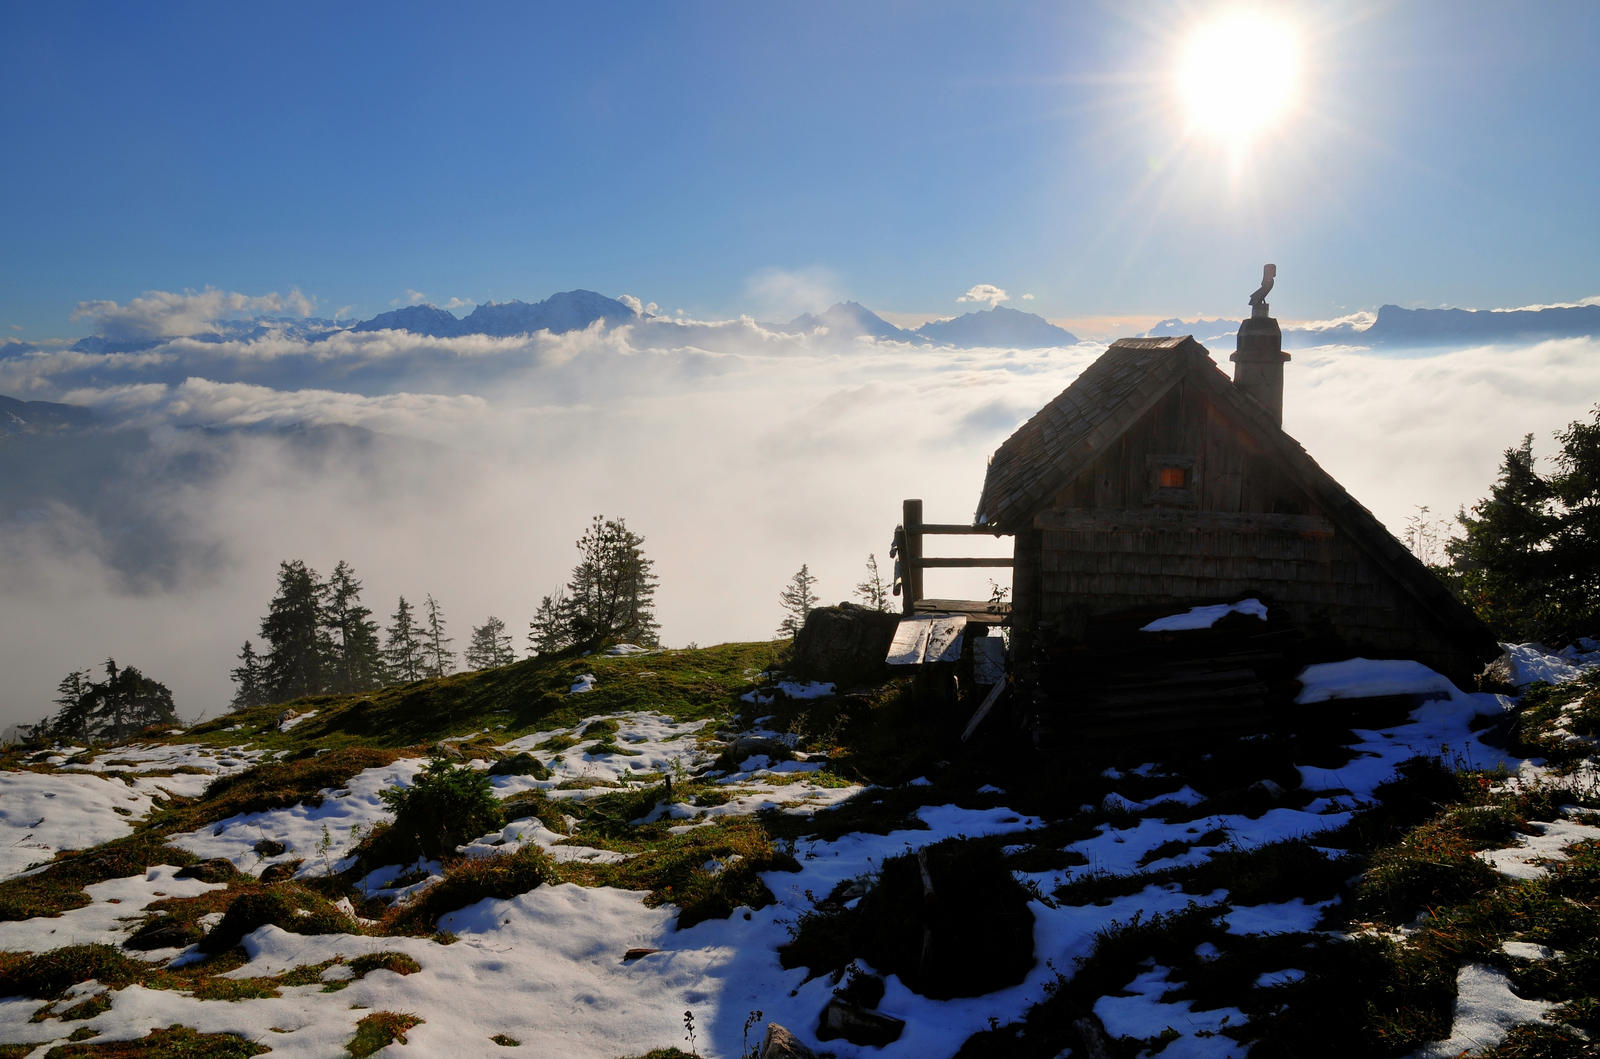 The Cabin Over The Clouds 2nd by Burtn